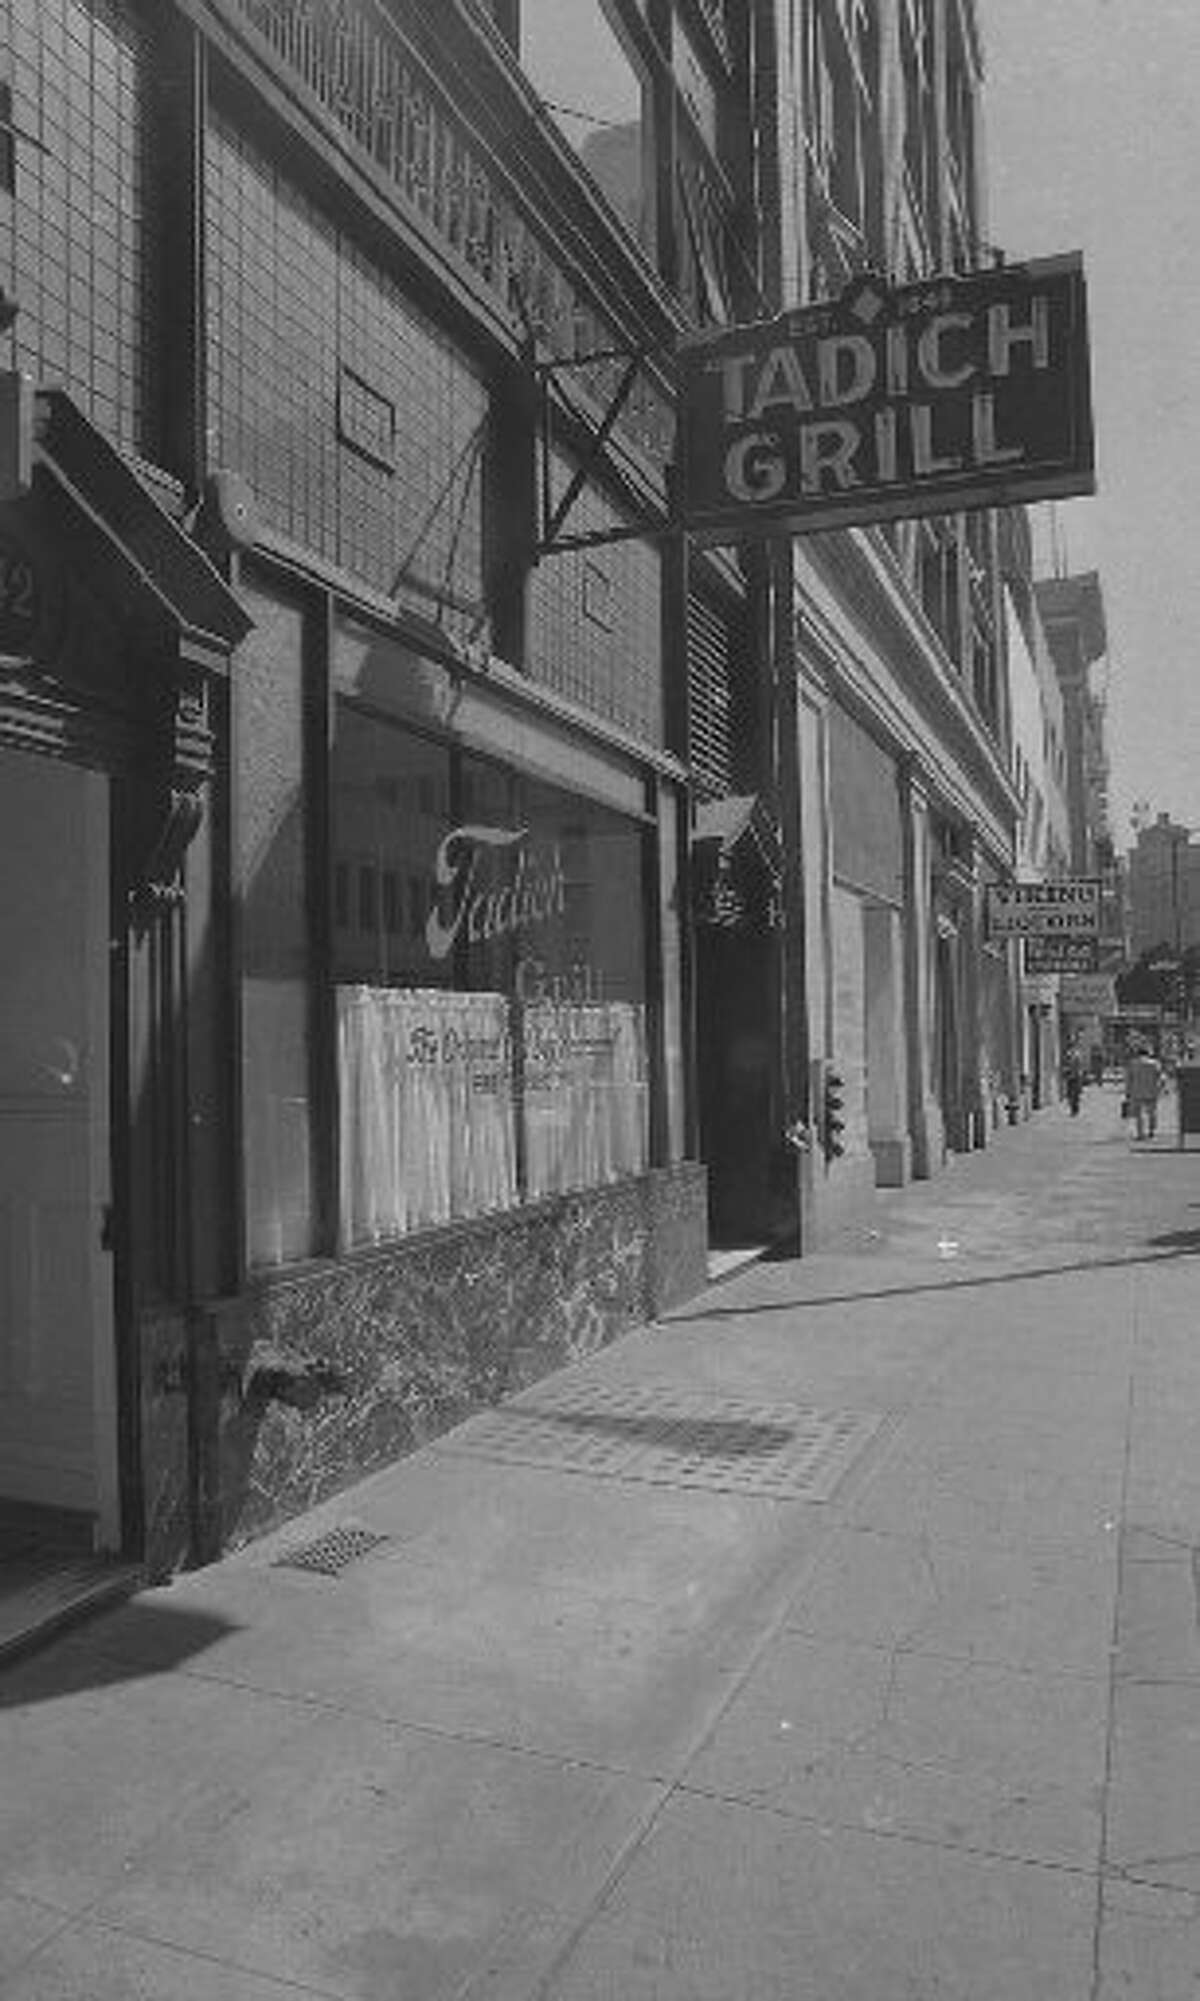 The exterior of Tadich in 1976